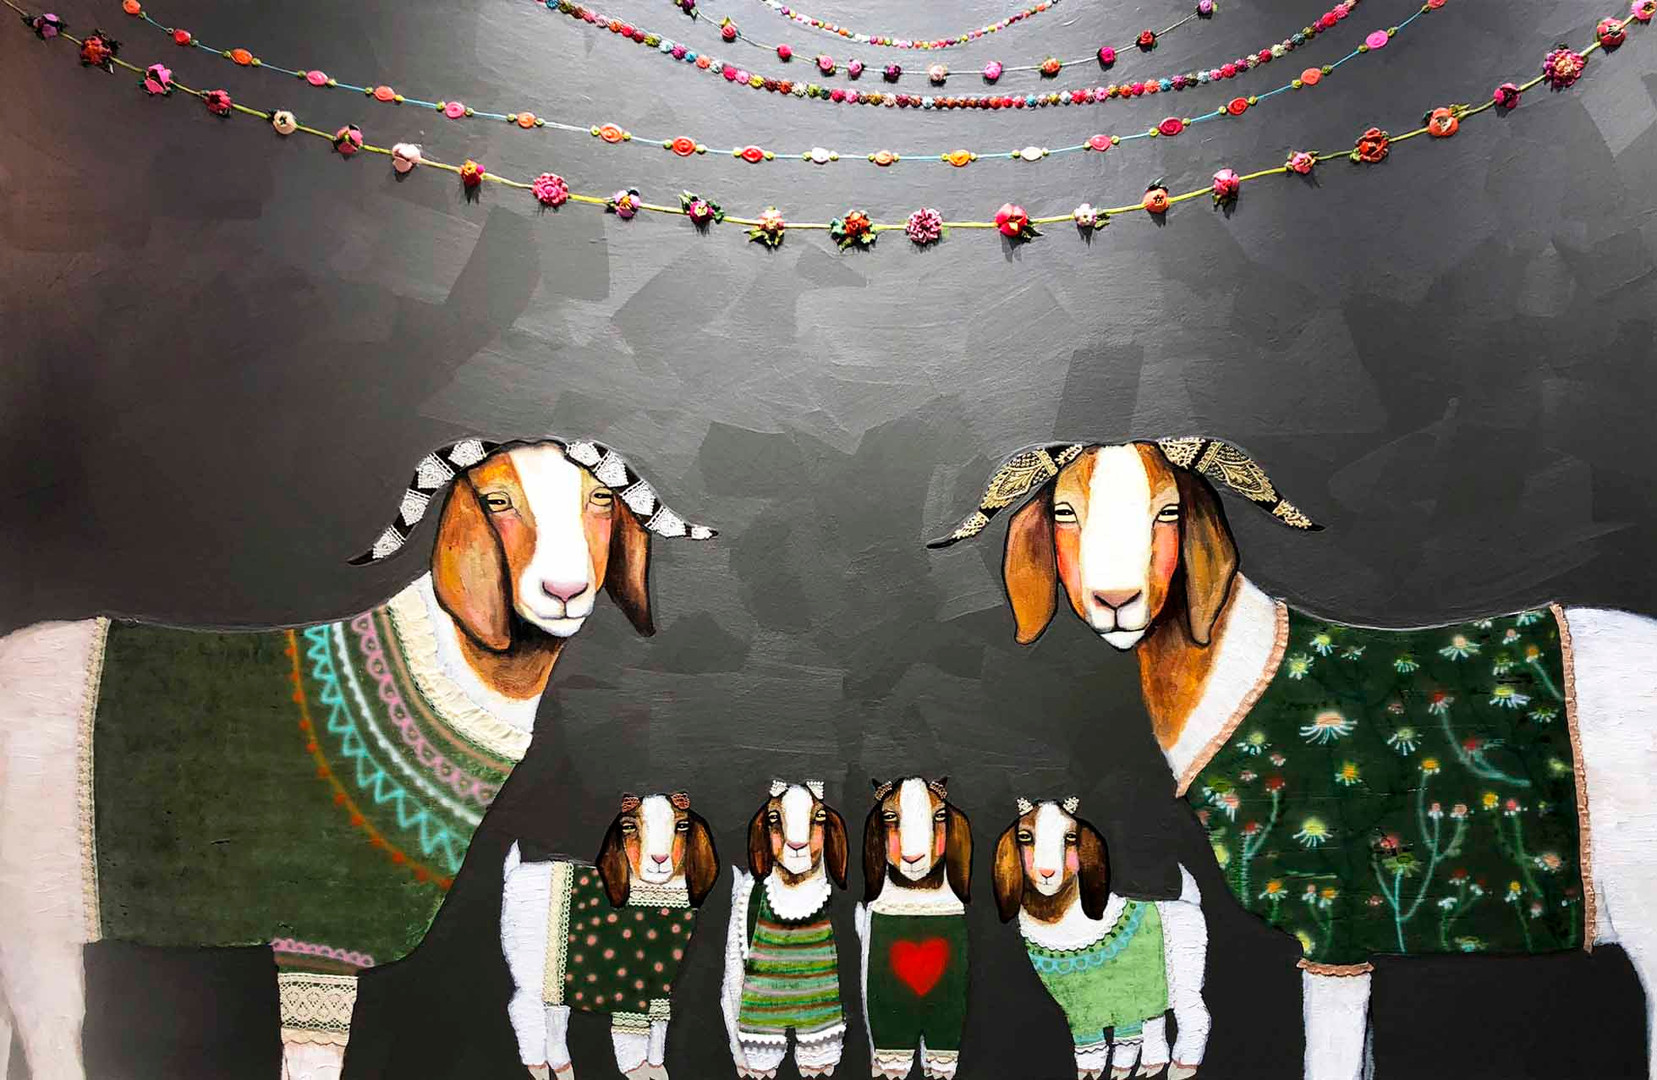 Boer Goats in Sweaters by Eli Halpin